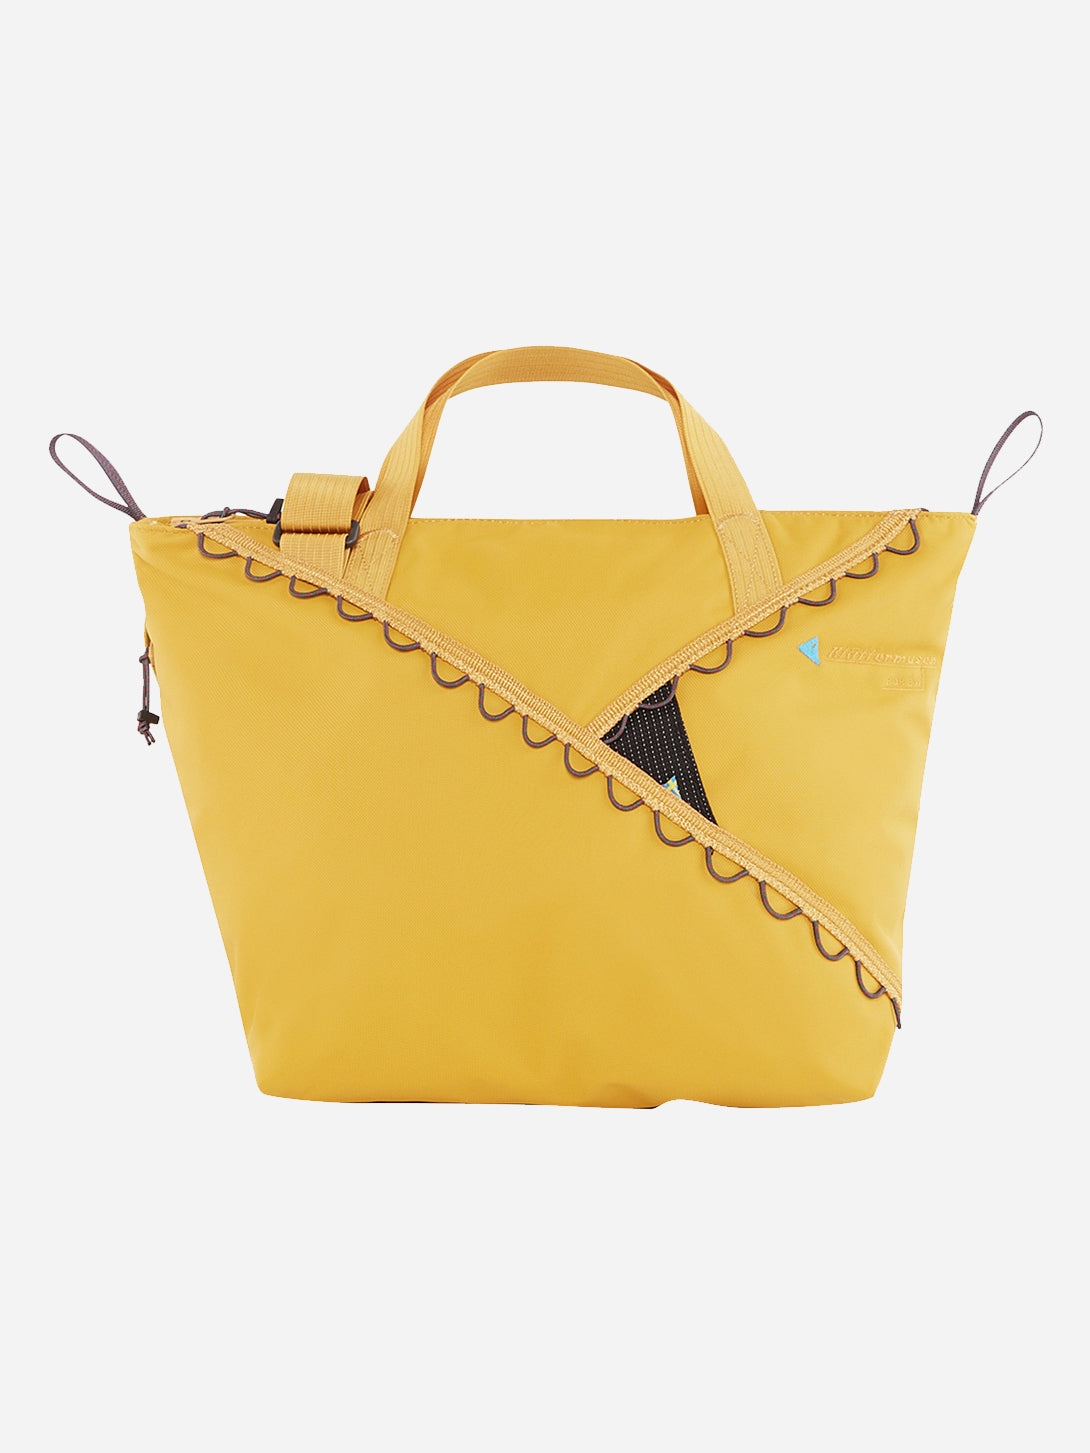 HONEY BOR 3.0 - KLATTERMUSEN TOTE BAG